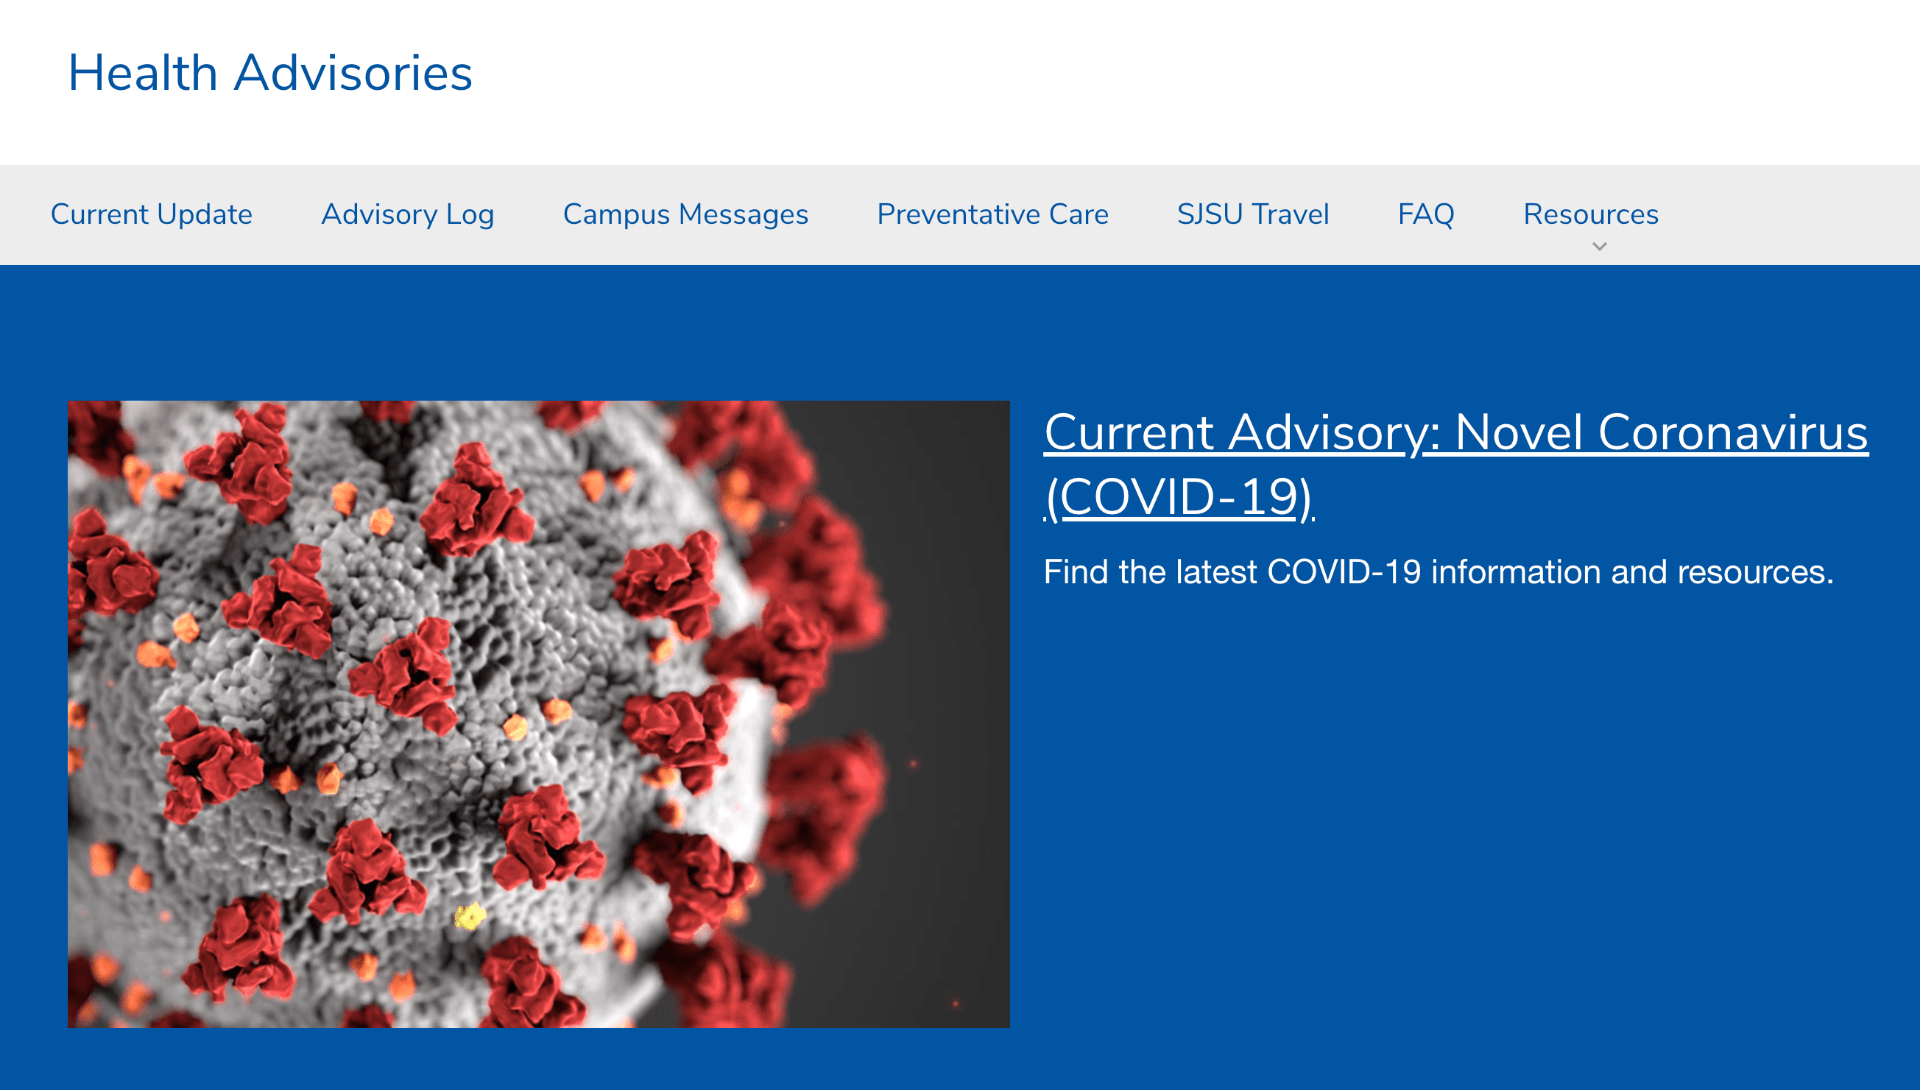 Homepage of the Health Advisories website.